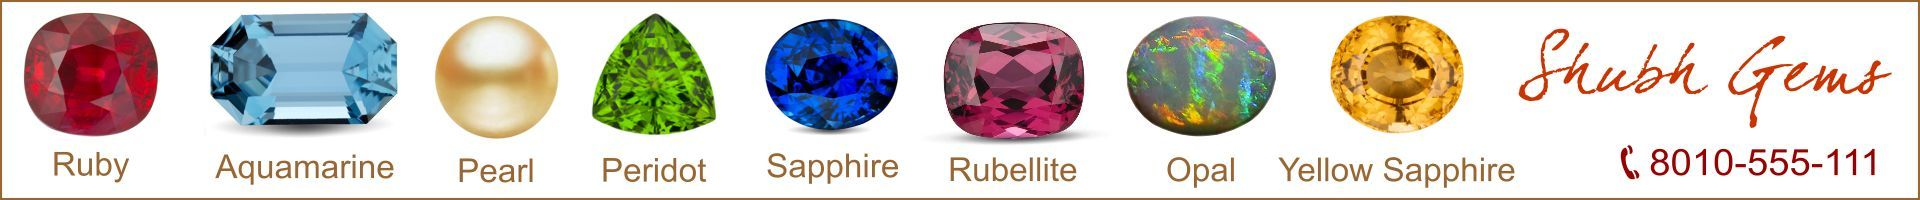 astrological gemstones